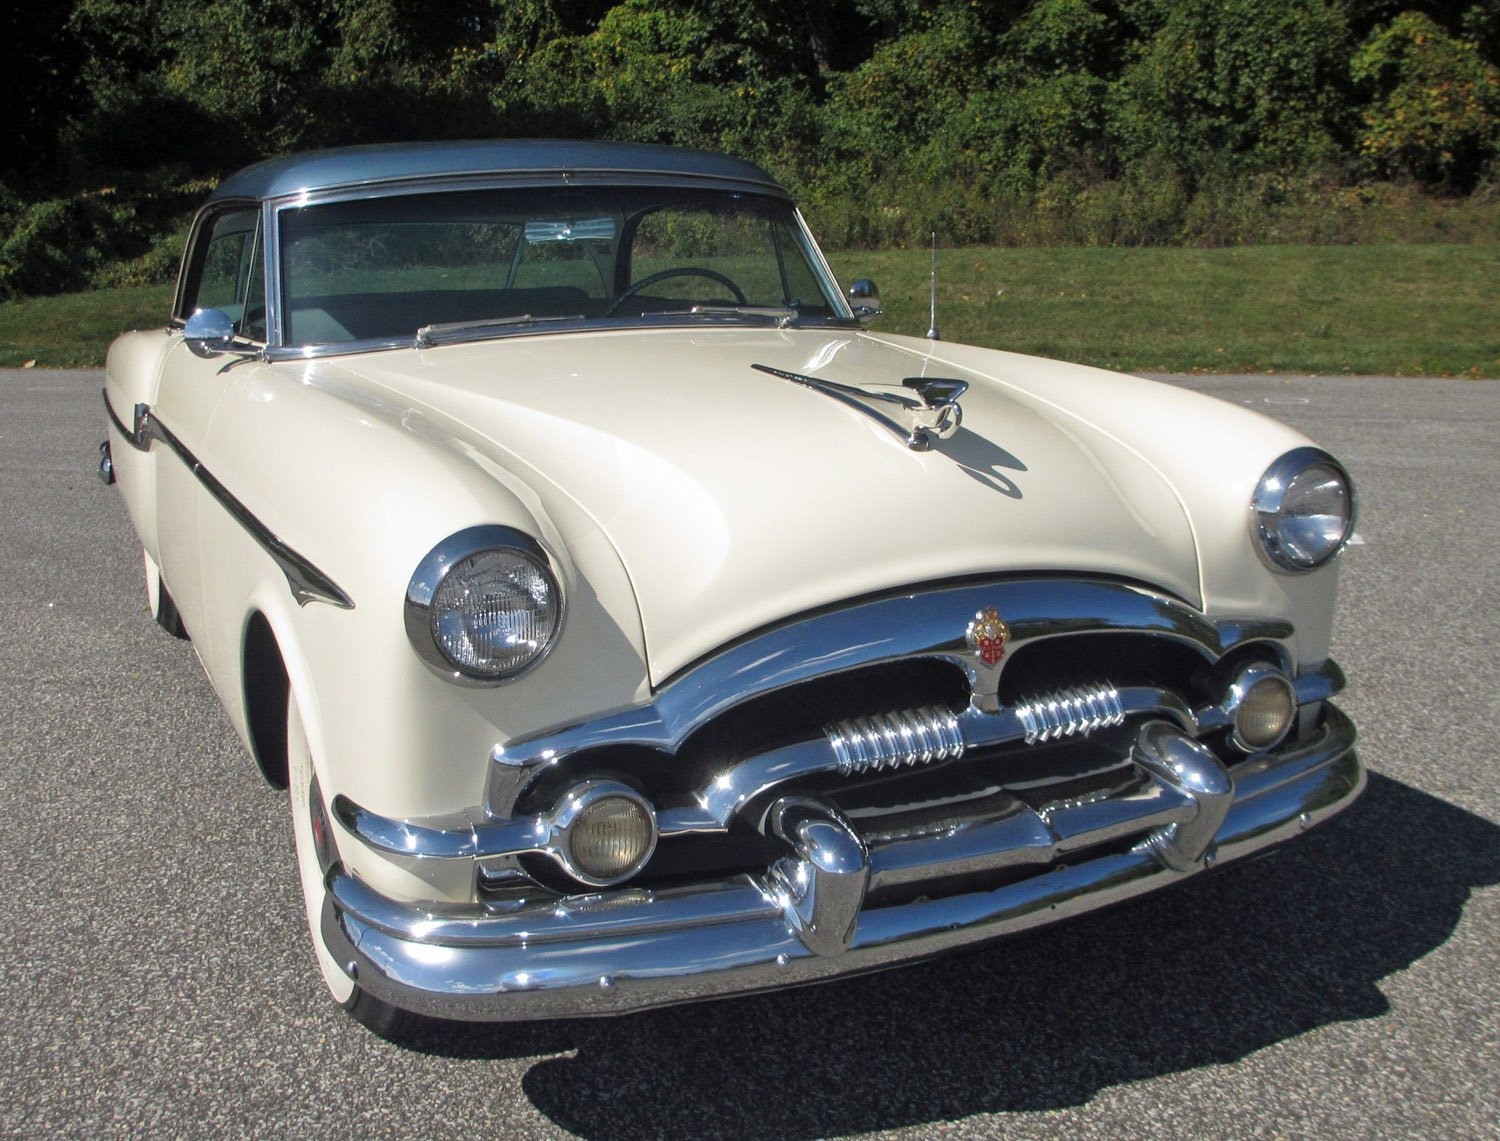 1953 Packard Clipper Mayfair Coupe